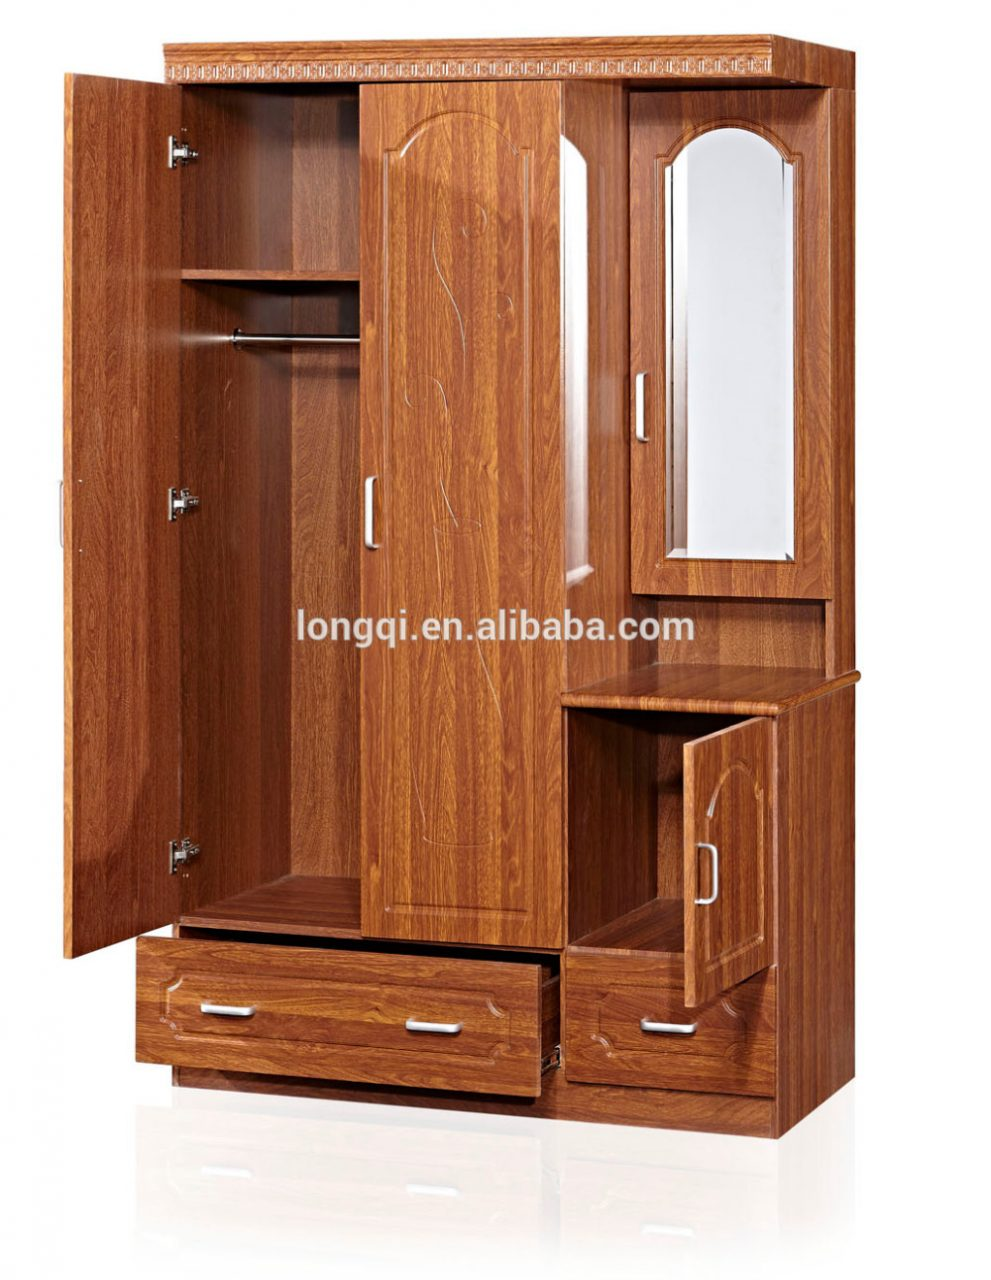 New Arrival Bedroom Mdf Wardrobe Design Wood Clothes Cabinet Mirror